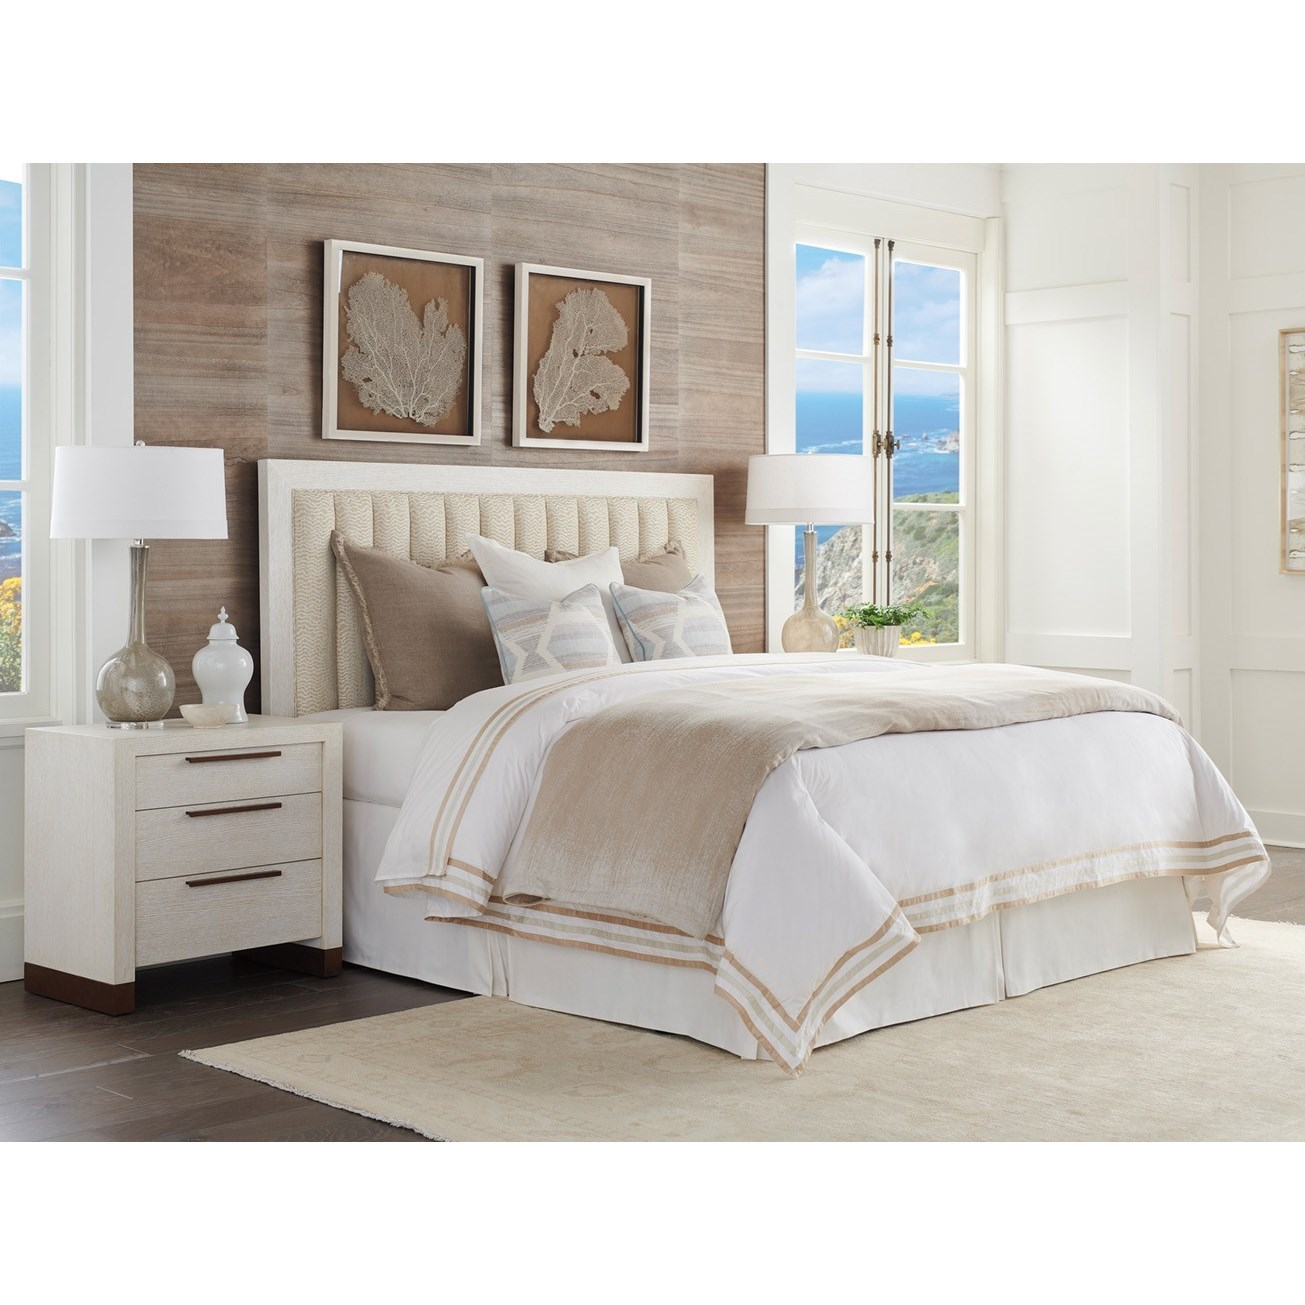 Carmel Queen Bedroom Group by Barclay Butera at Baer's Furniture